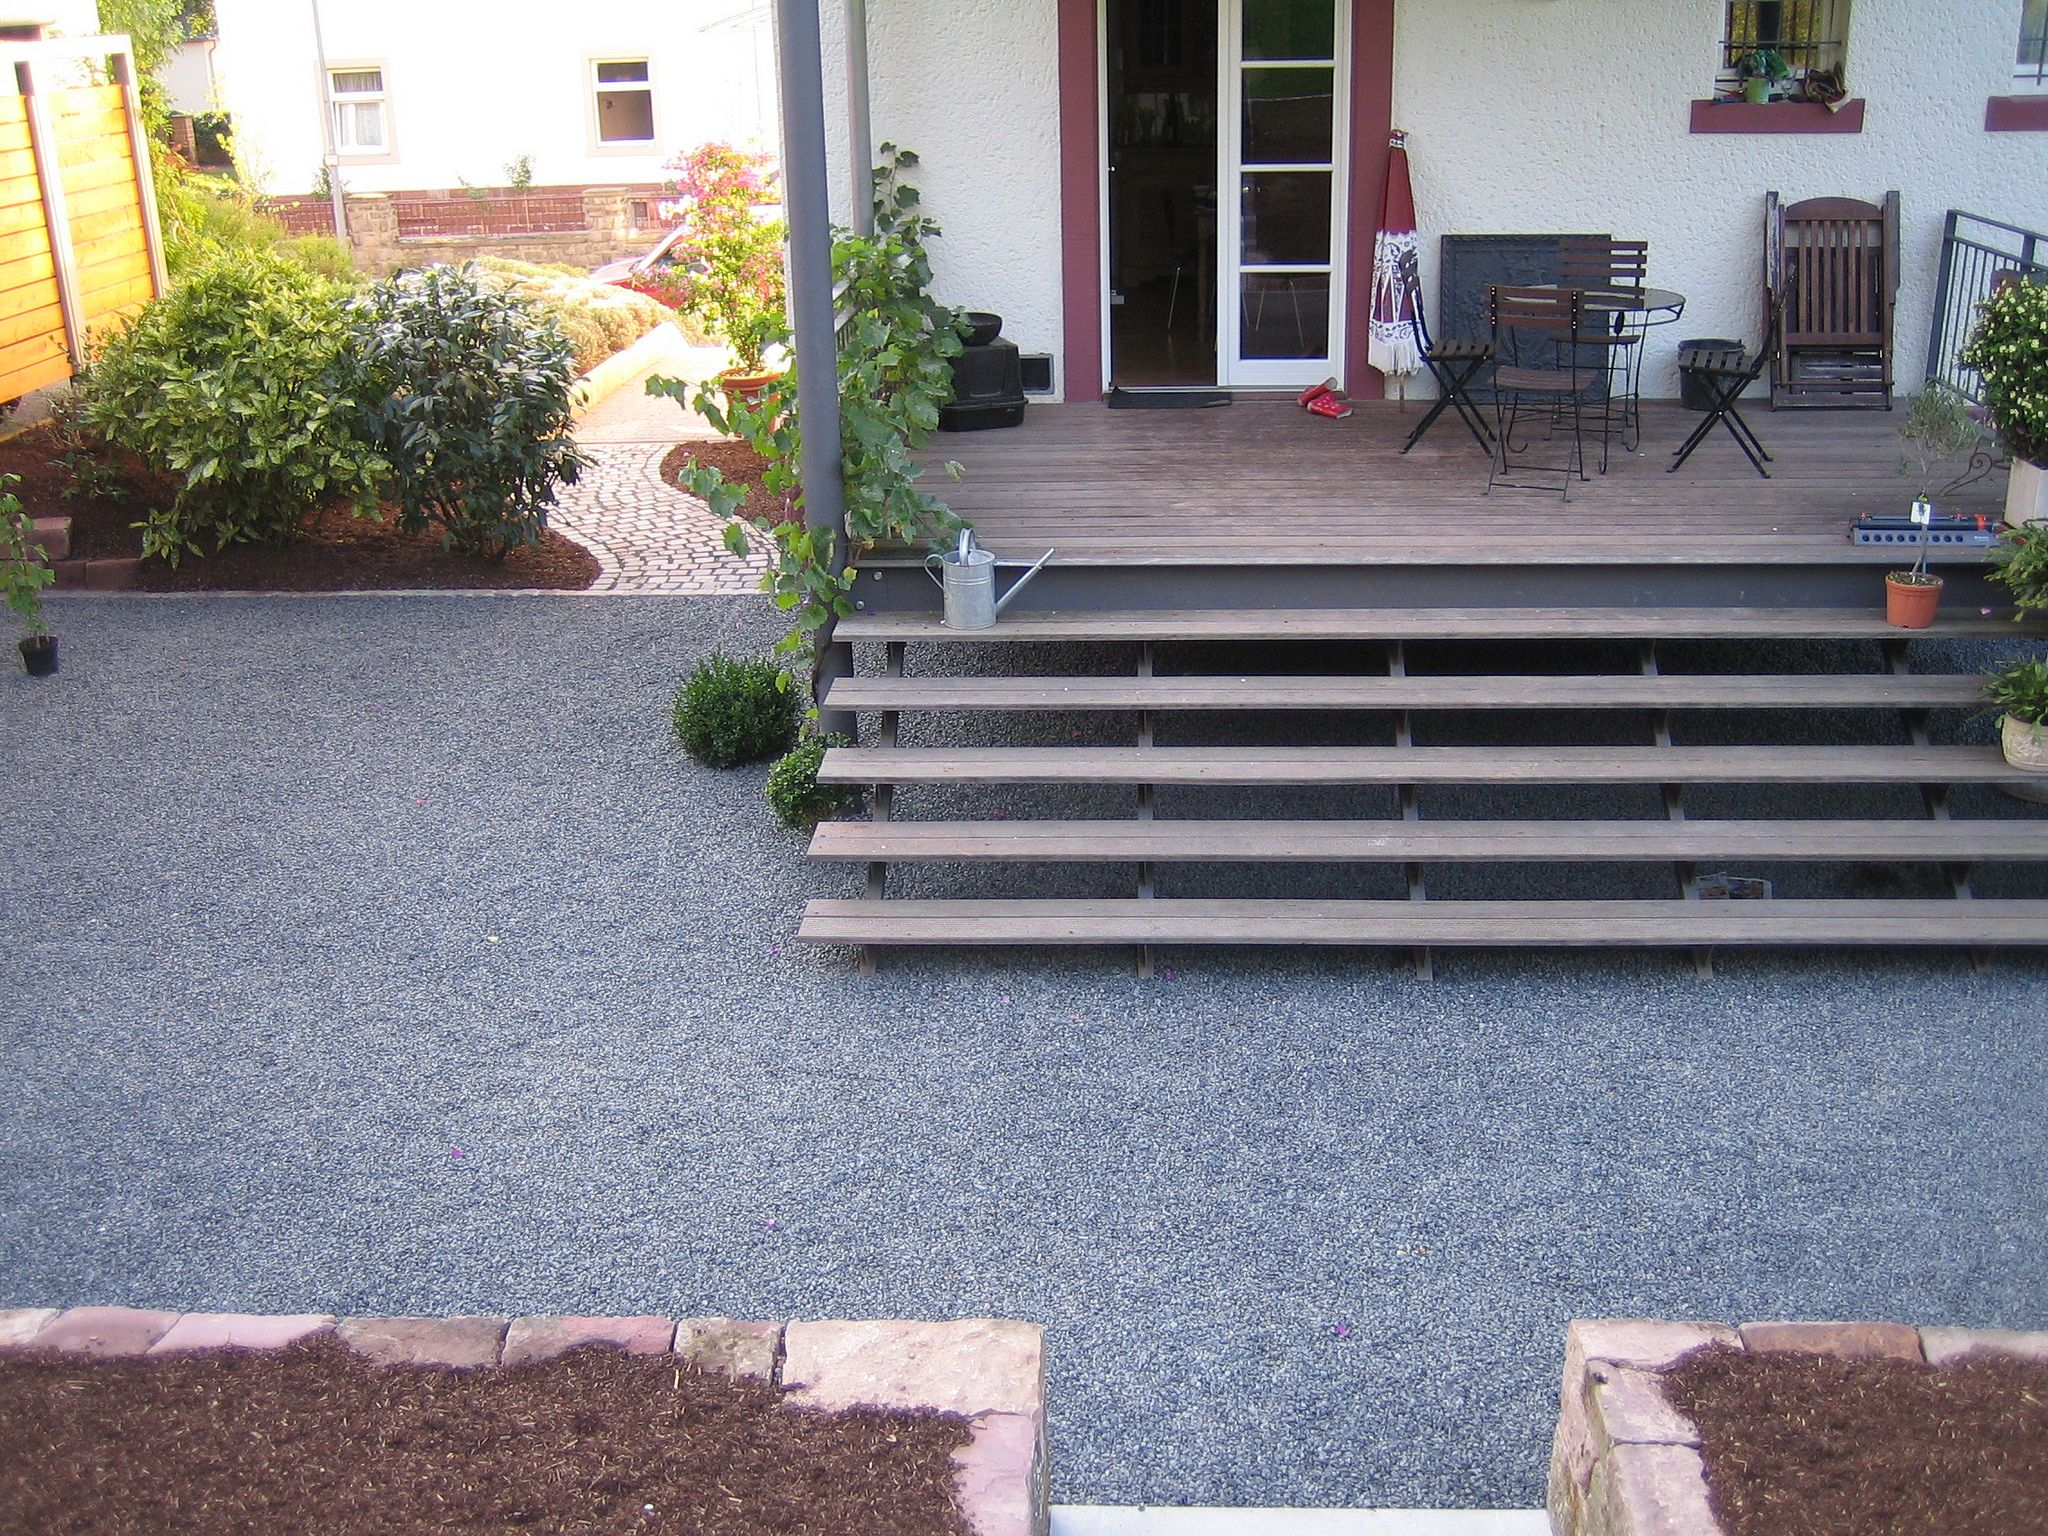 Holzterrasse Mit Stufen Hochparterre-terrasse | Patio Steps, Backyard Design, Yard Design